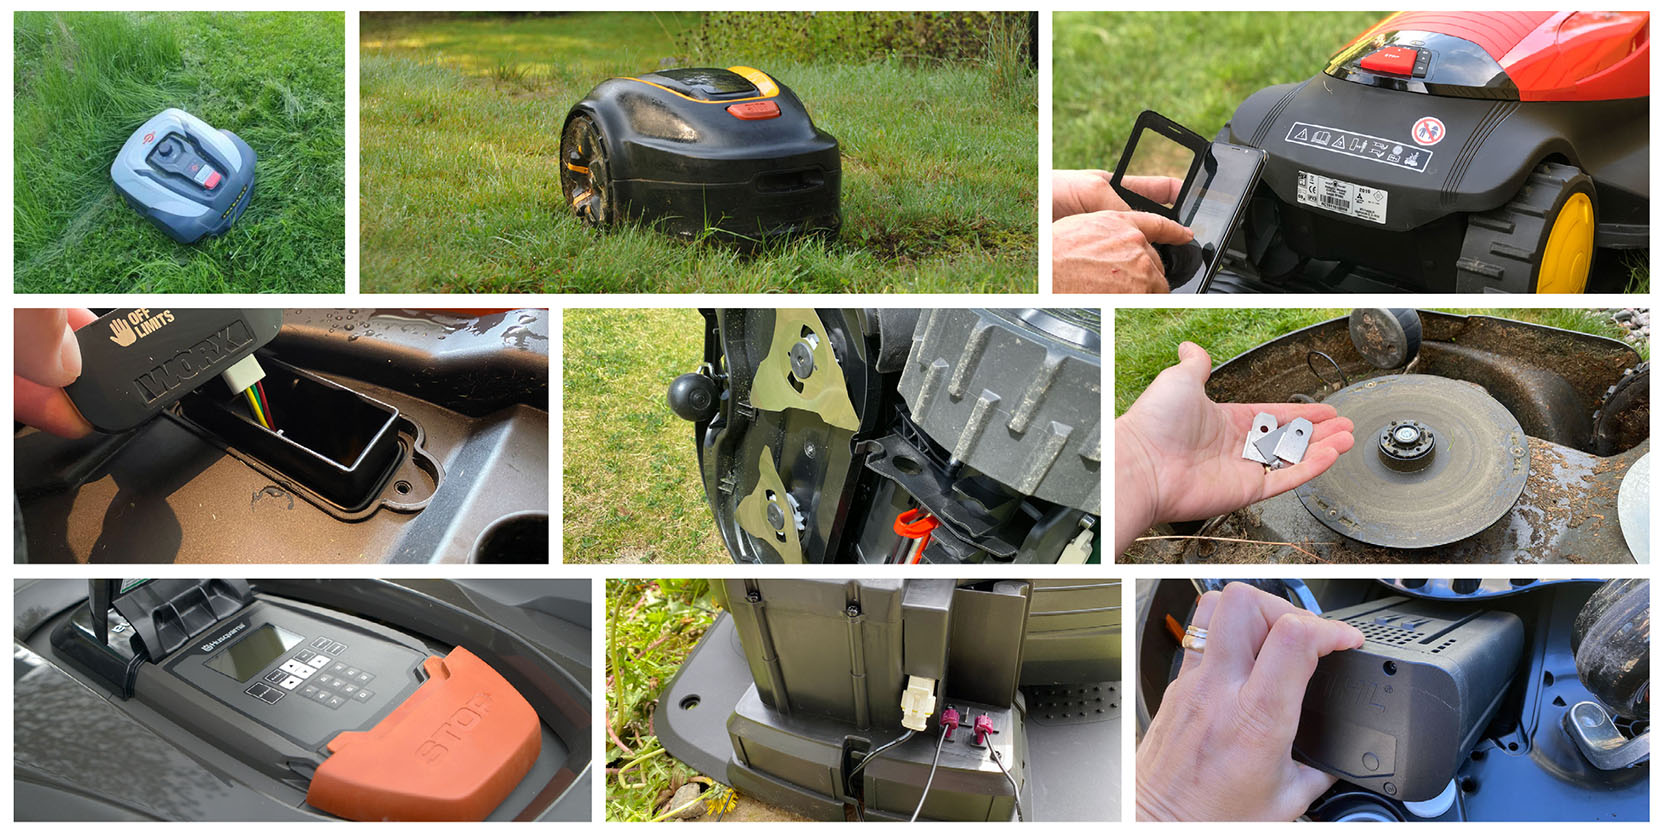 Images from testing robotic lawn mowers